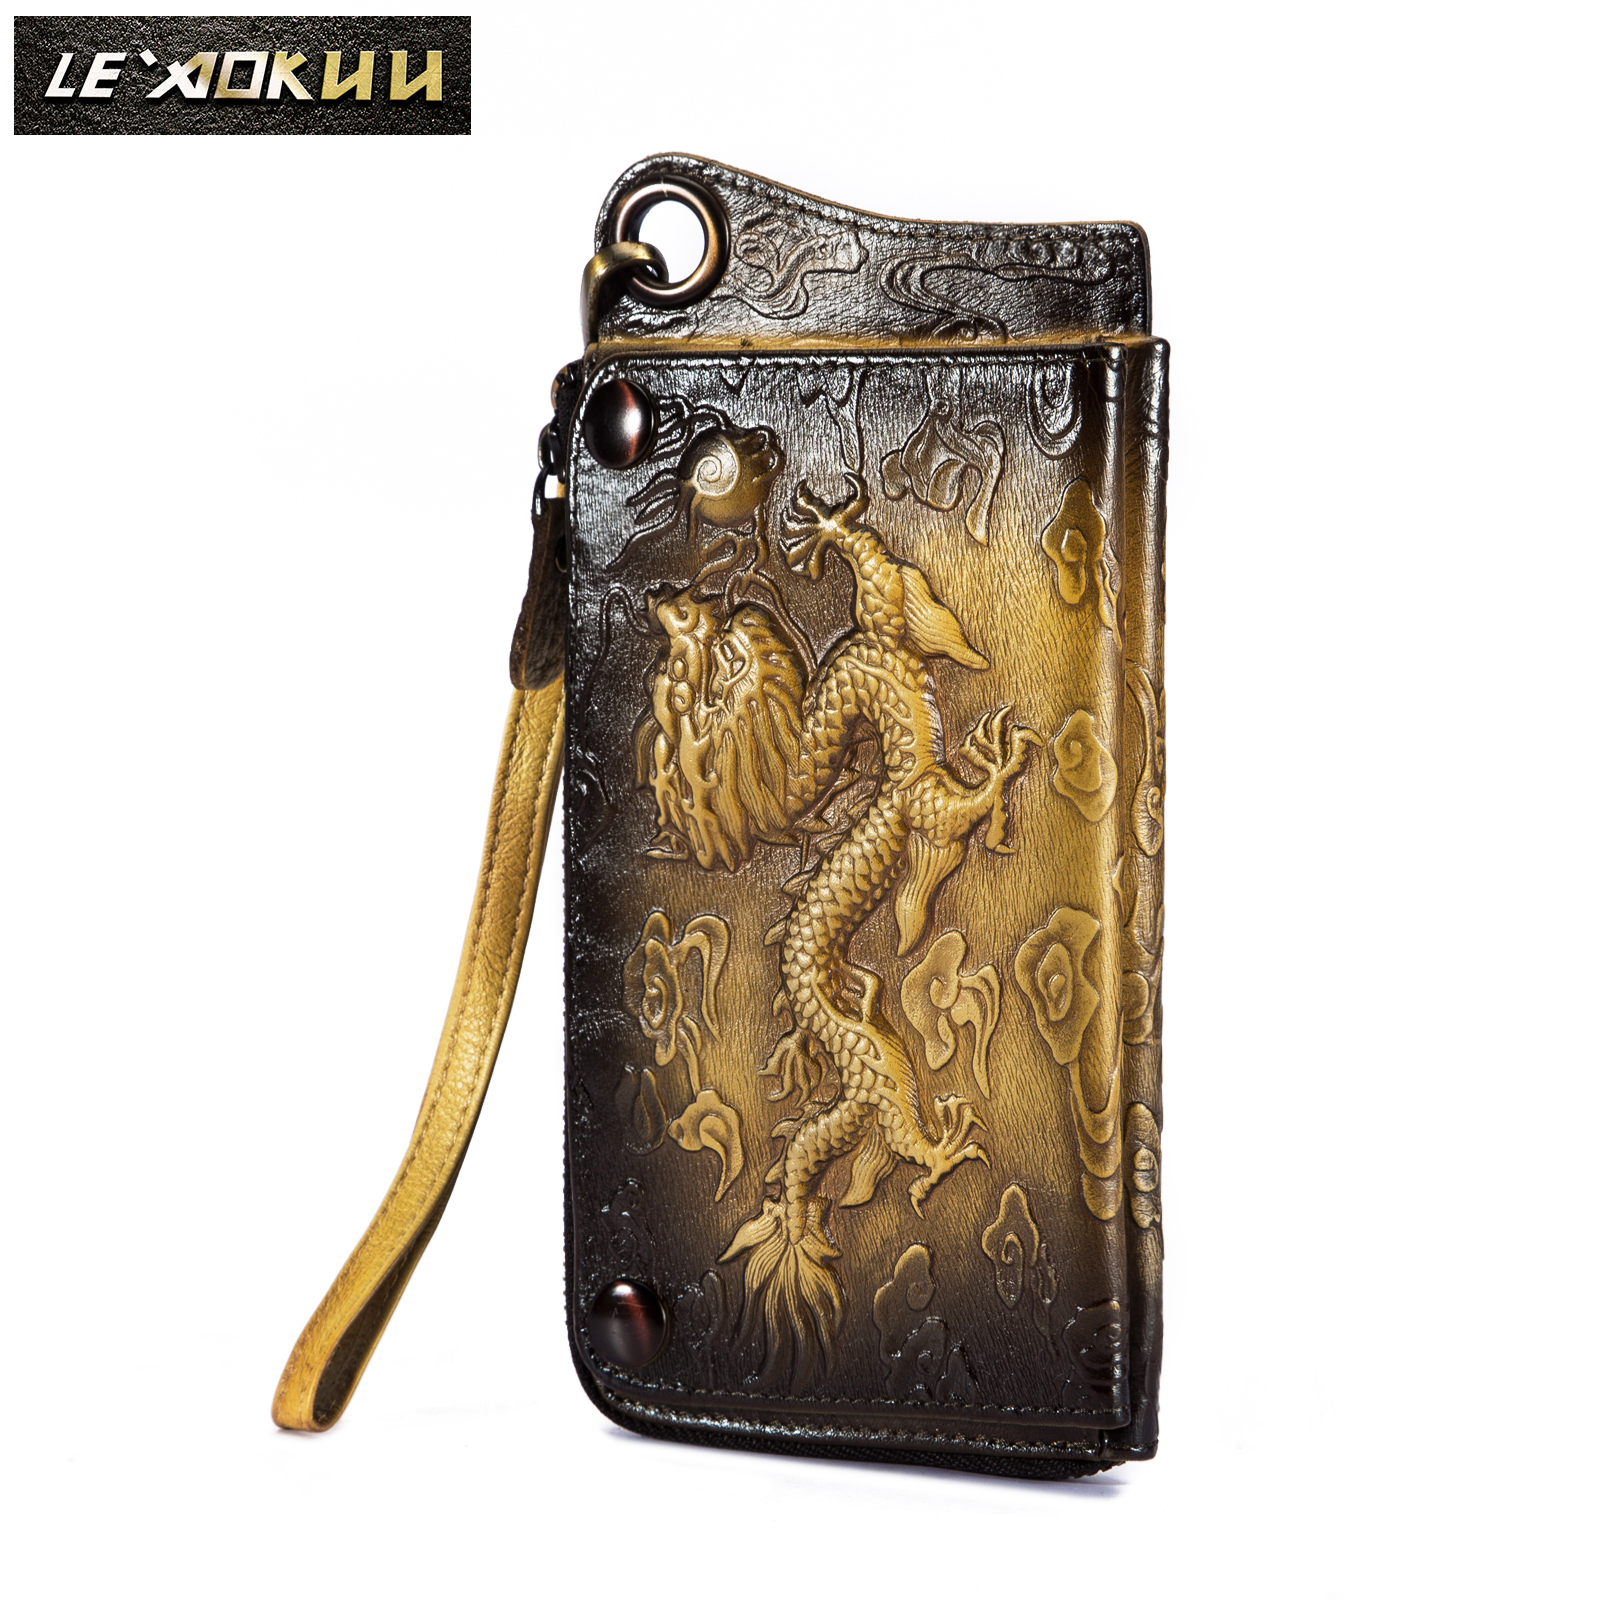 Fashion Male Organizer Leather Design Animal Emboss Checkbook Chain Zipper Pocket Wallet Purse Clutch Phone Sleeve Men Ck001-1c